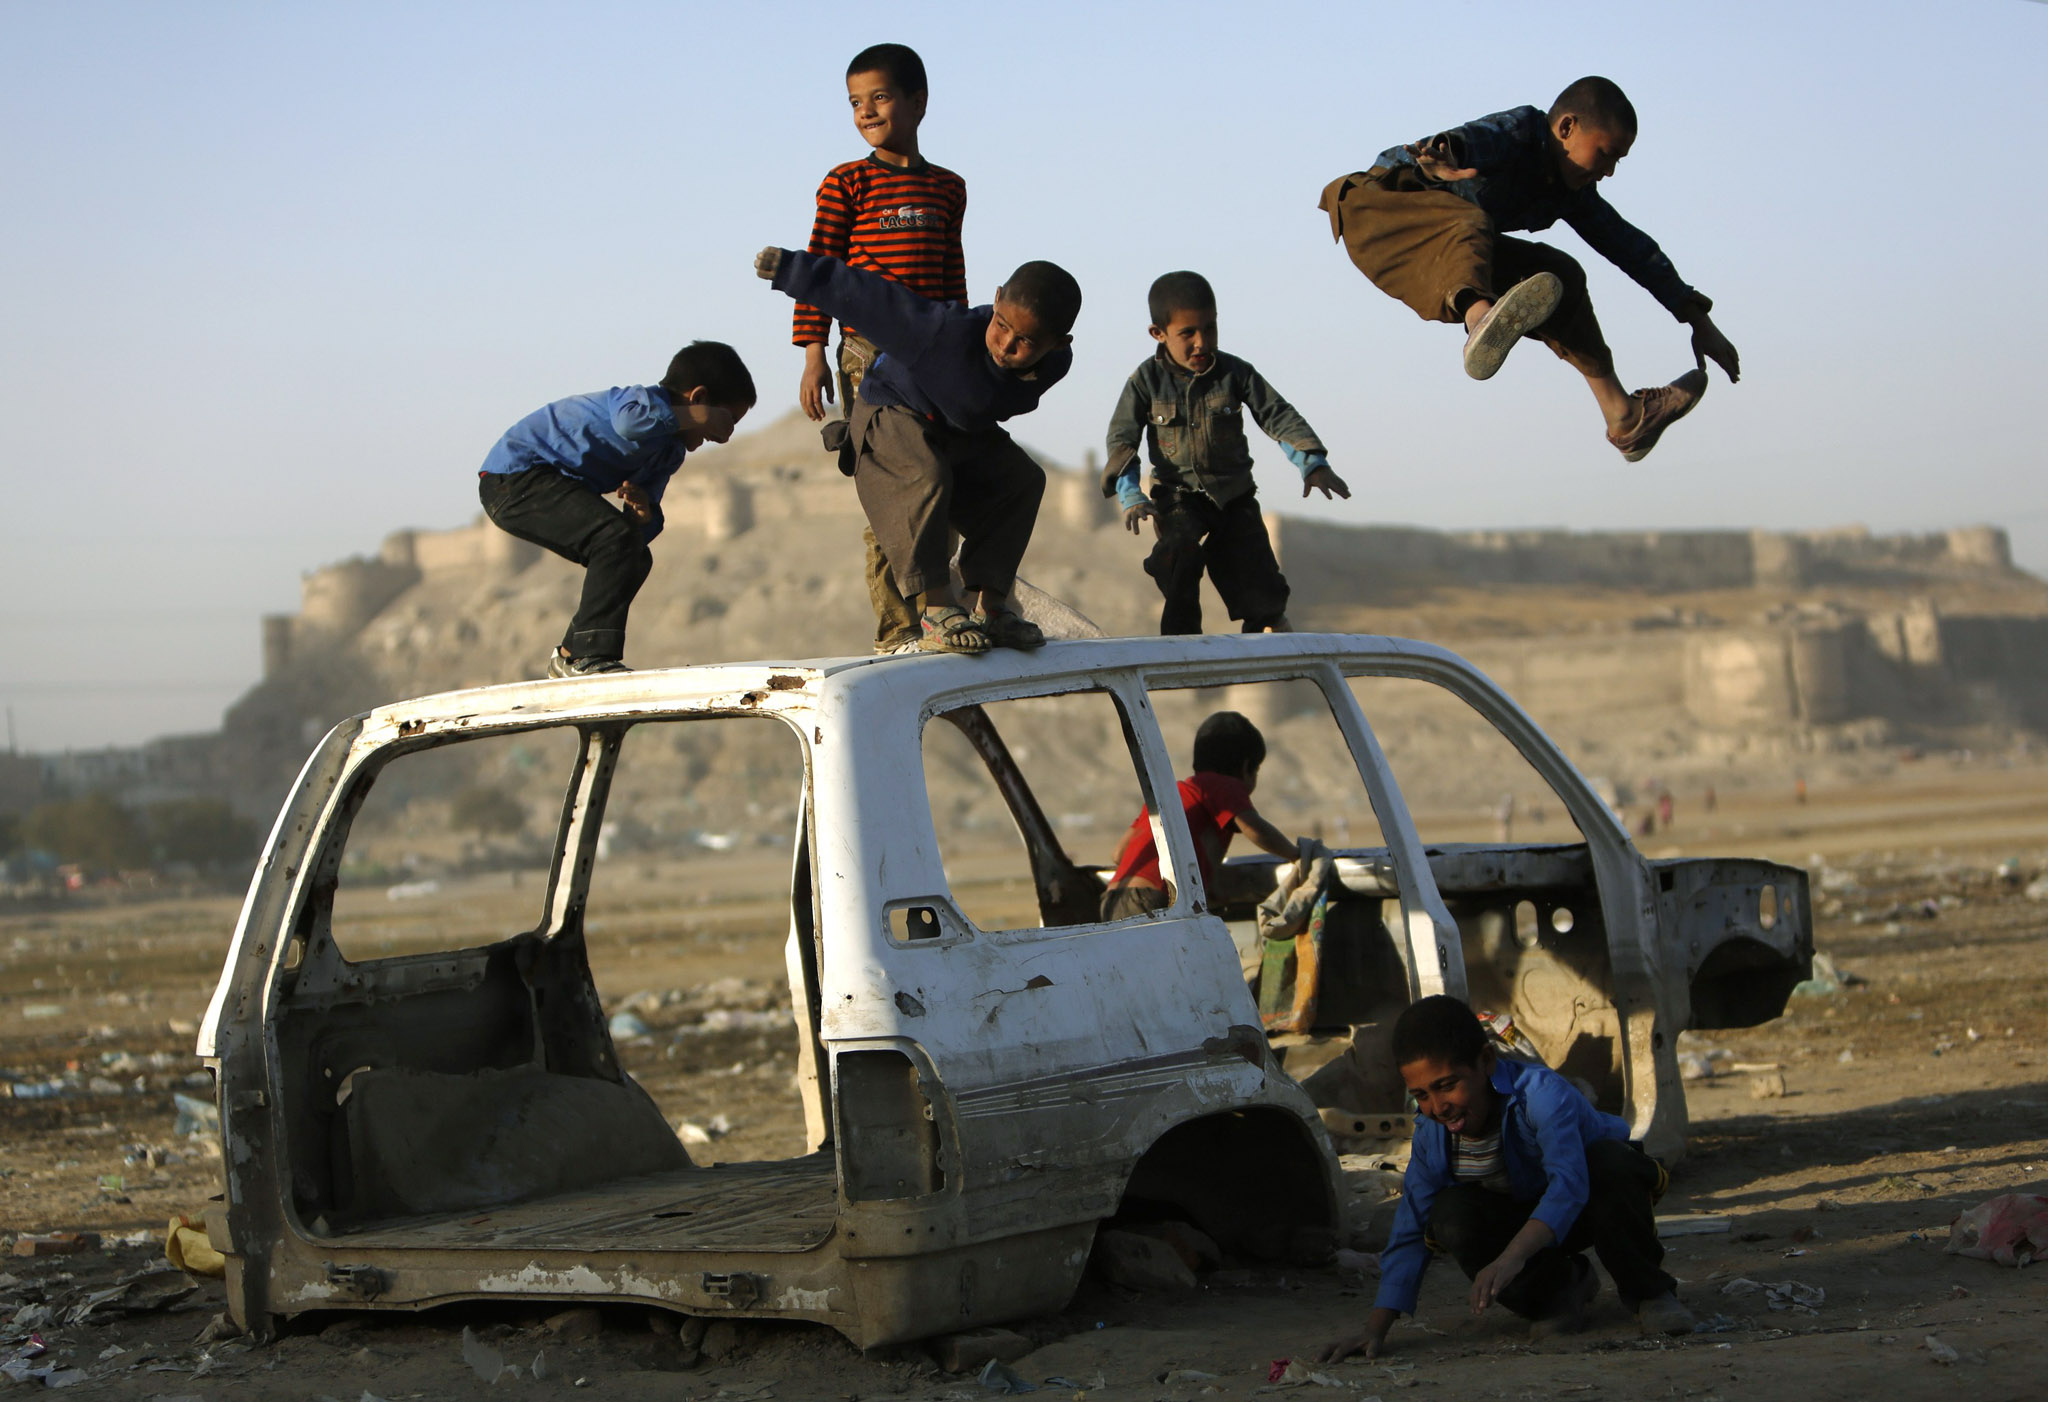 Afghan boys play on a destroyed car in Kabul...Afghan boys play on a destroyed car in Kabul October 22, 2013.  REUTERS/Mohammad Ismail